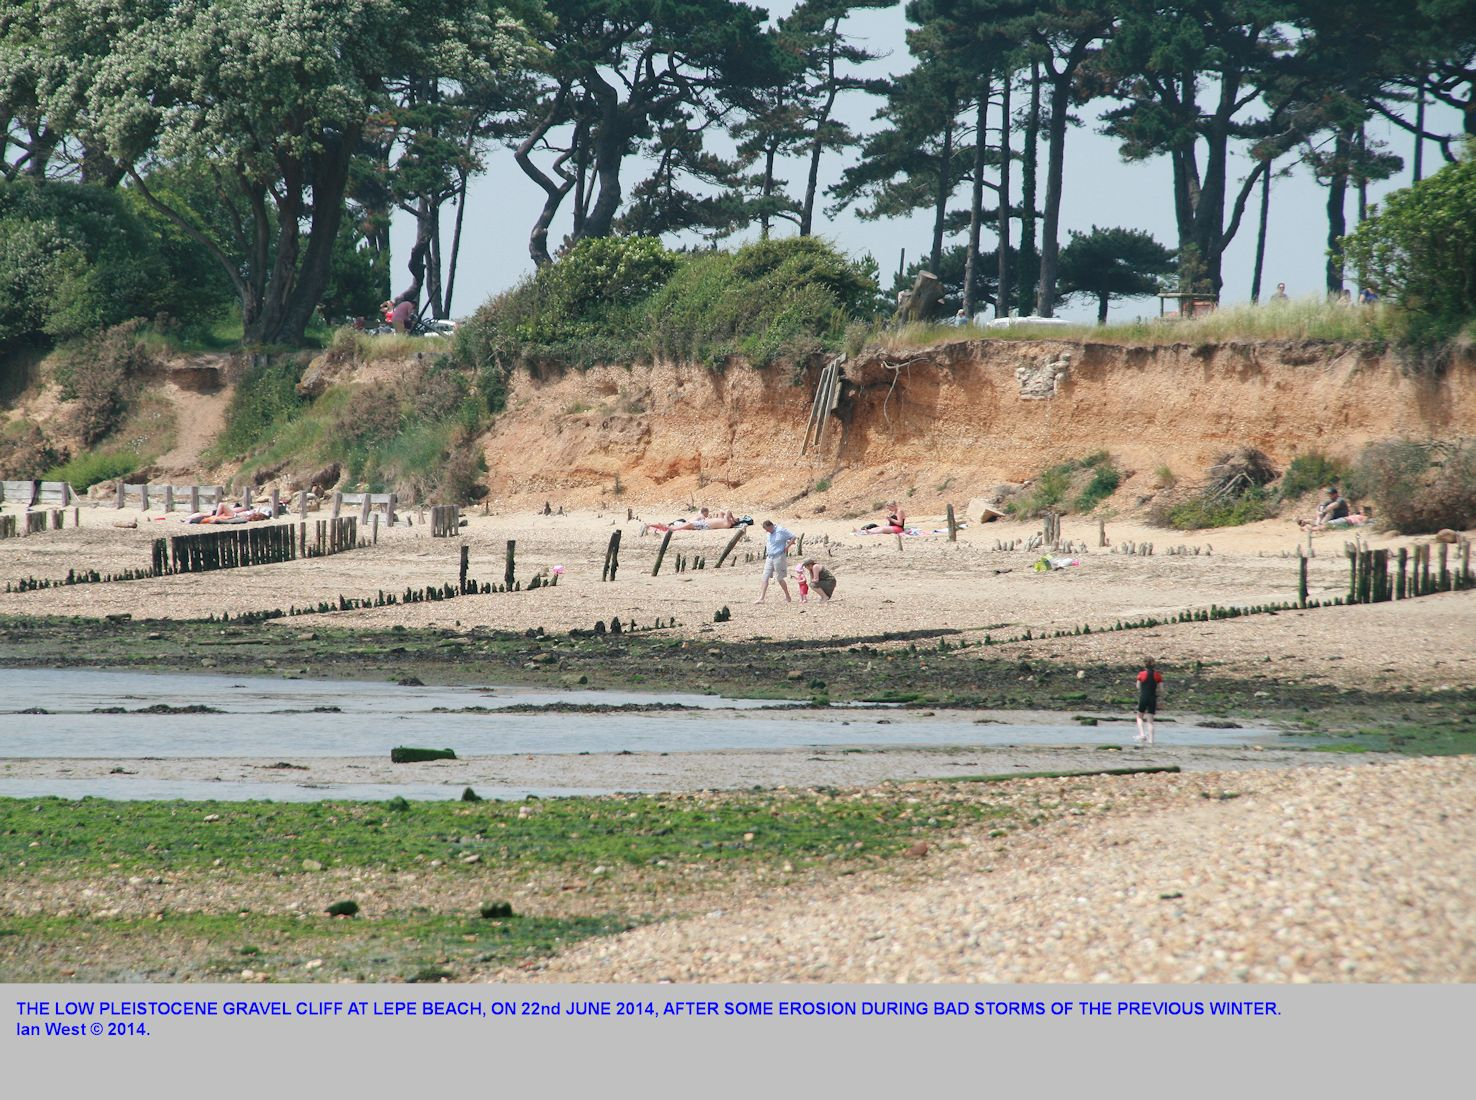 Pleistocene gravel cliff at central to east Lepe Beach, Hampshire, seen in June 2014, after storms from the previous winter have caused significant erosion